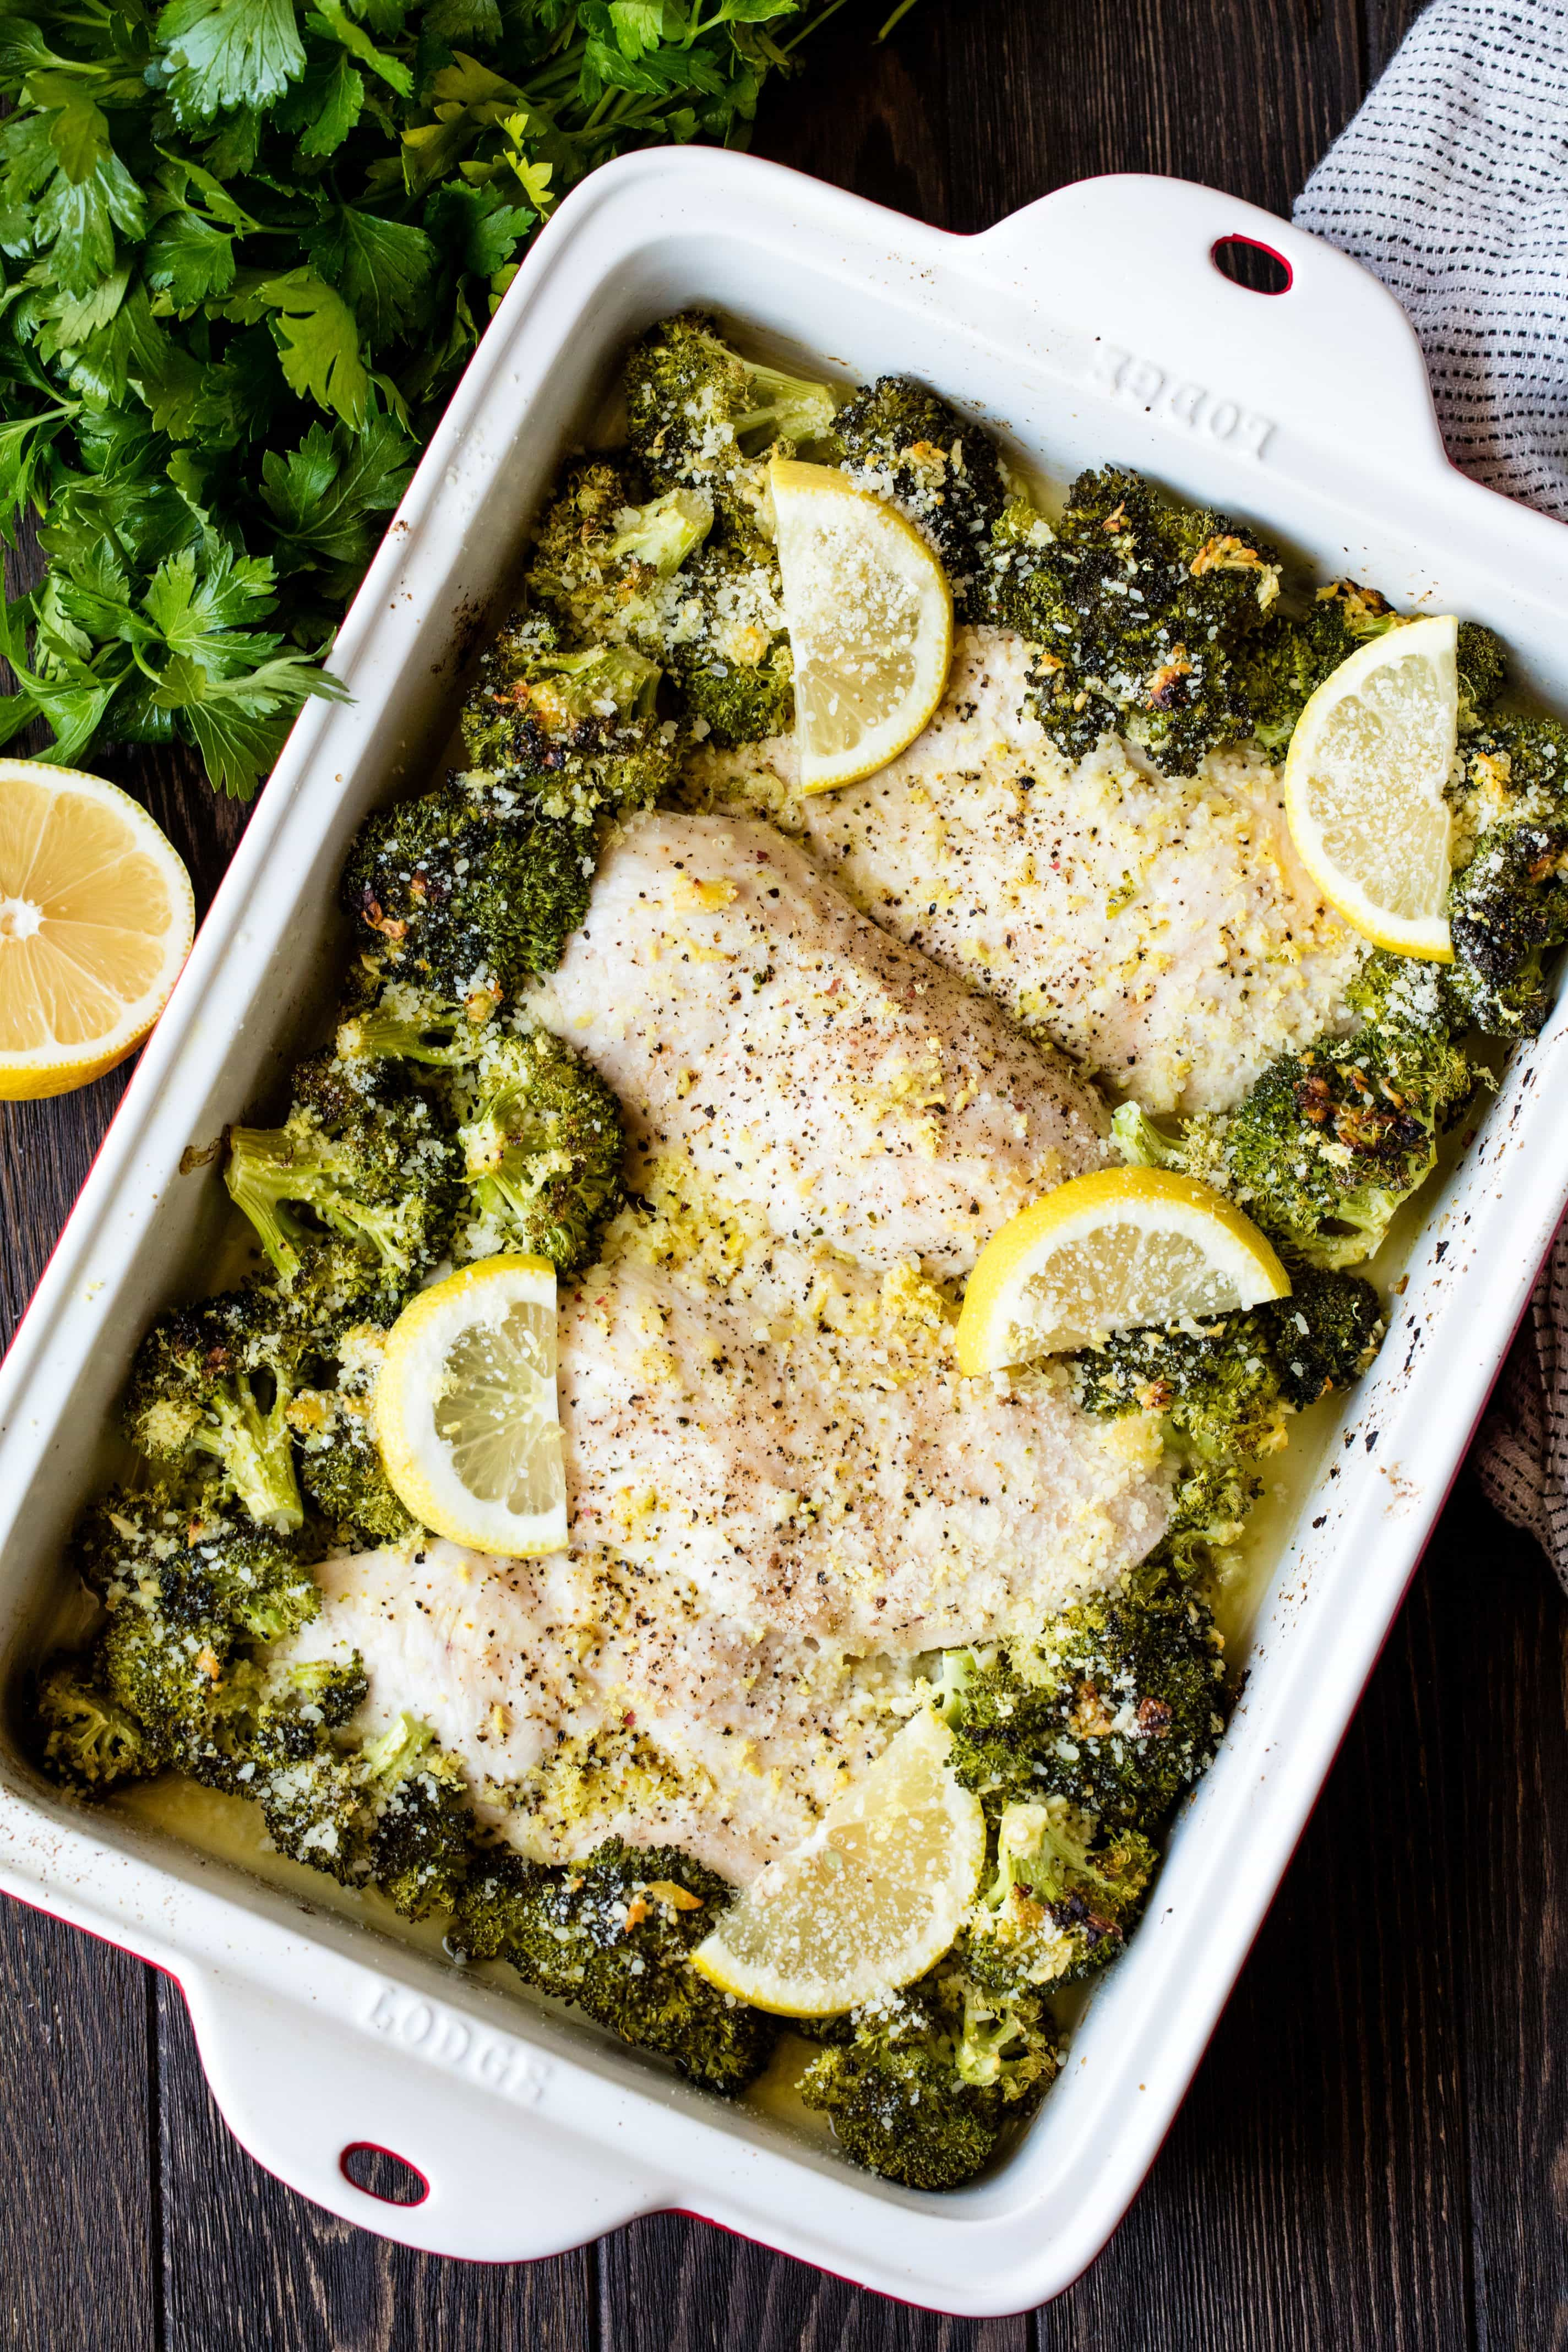 Lemon Garlic Chicken Broccoli Bake